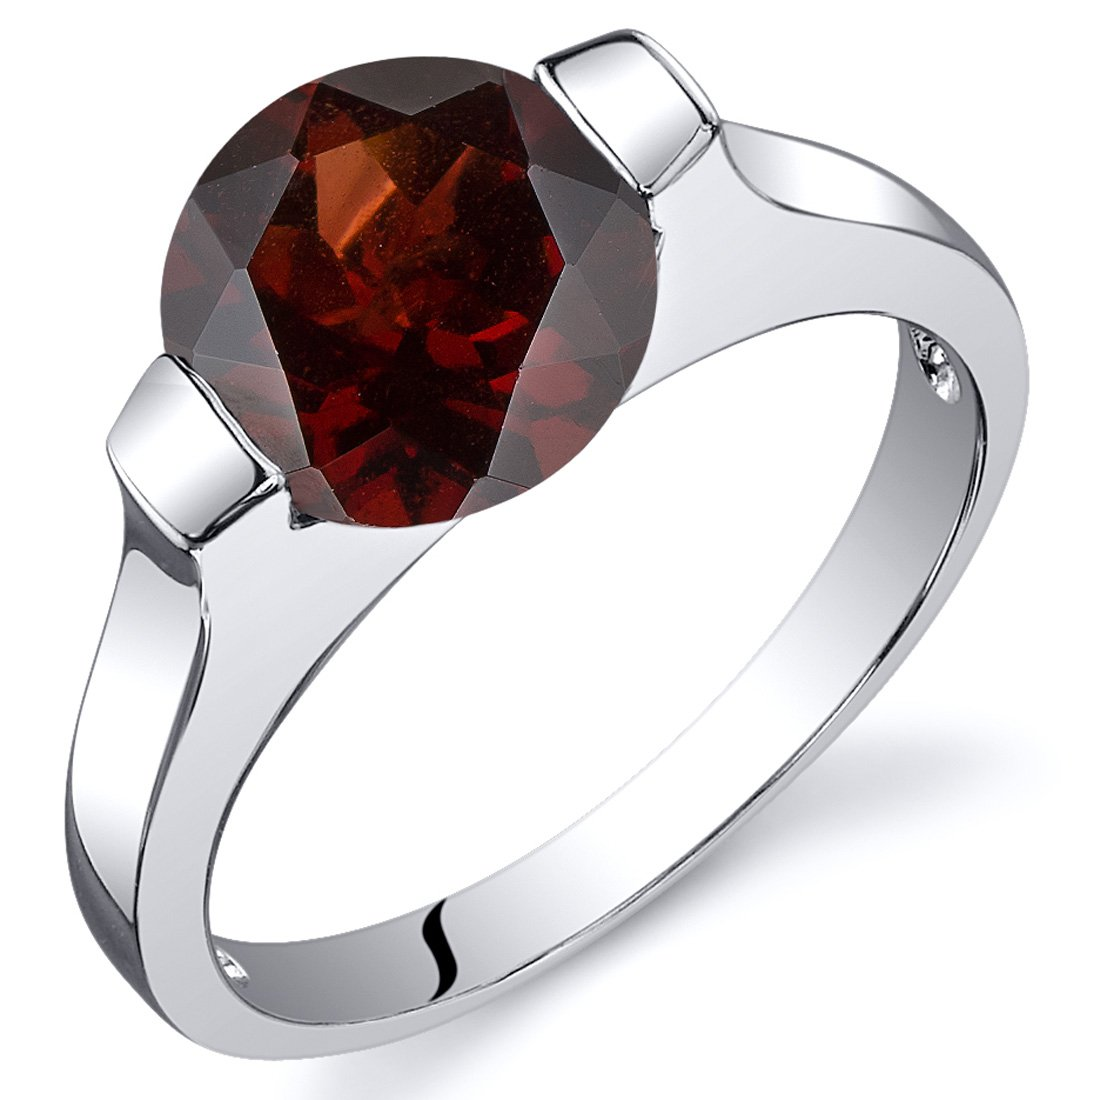 Bezel Set 2.50 carats Garnet Engagement Ring in Sterling Silver Rhodium Nickel Finish Size 6